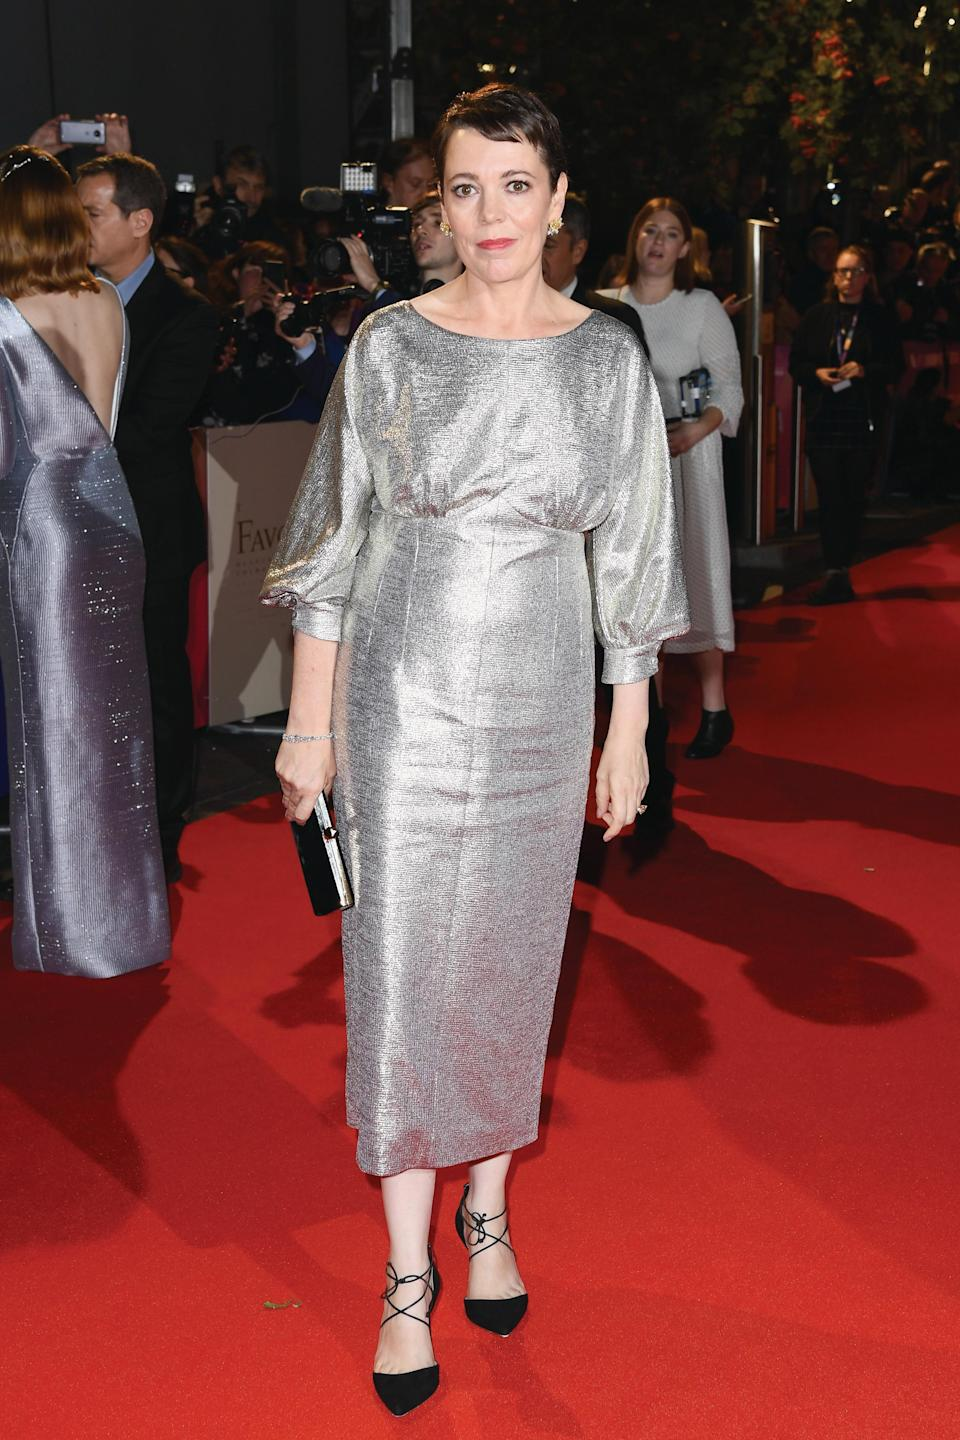 <p>Much like her co-star Emma Stone, Olivia opted to wear a shimmery, silver dress for her film's premiere at London Film Festival. But while Emma opted for Louis Vuitton, Olivia stayed true to her British roots in a dress by London Fashion Week designer Emilia Wickstead. <em>[Photo: Getty for the BFI]</em> </p>